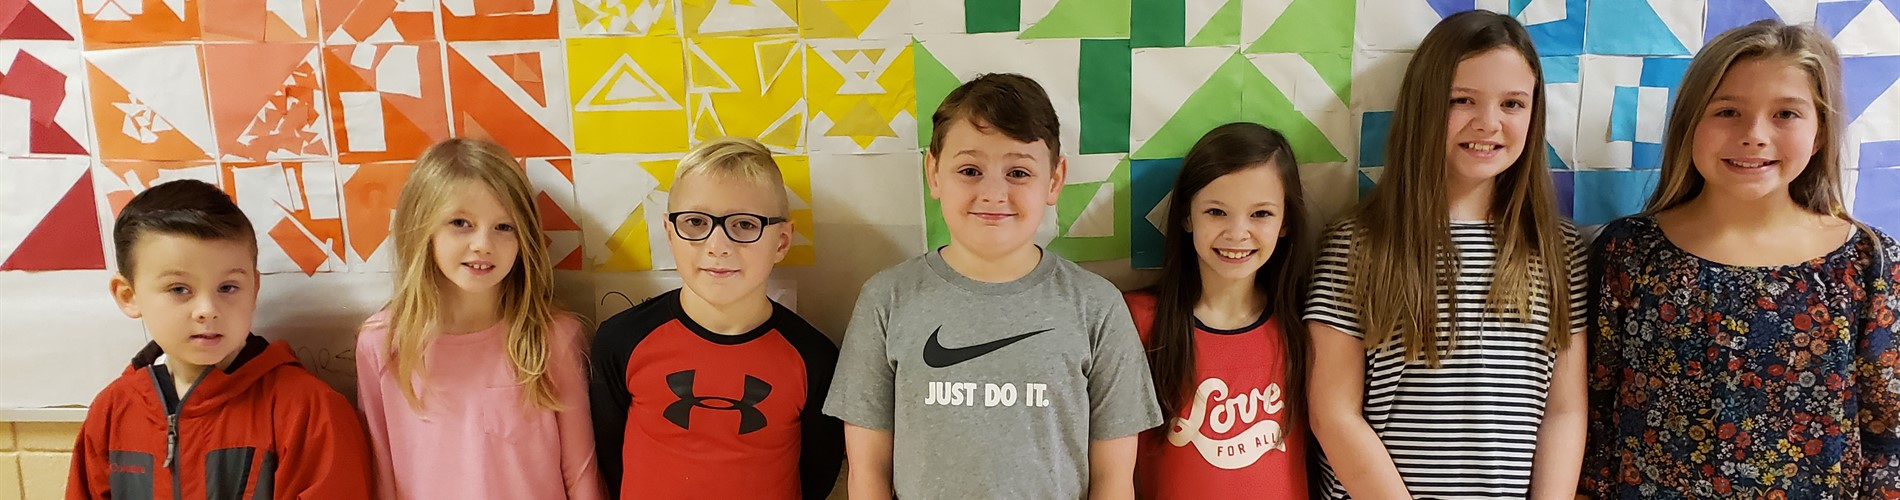 Congratulations to the NLES October Student Leaders of the Month: Devin Guess, Raelynn Polanec, Zeke Gandee, Davin McDowell, Bailey Welsh, Rylee Allcock and Natalie Champion!!!